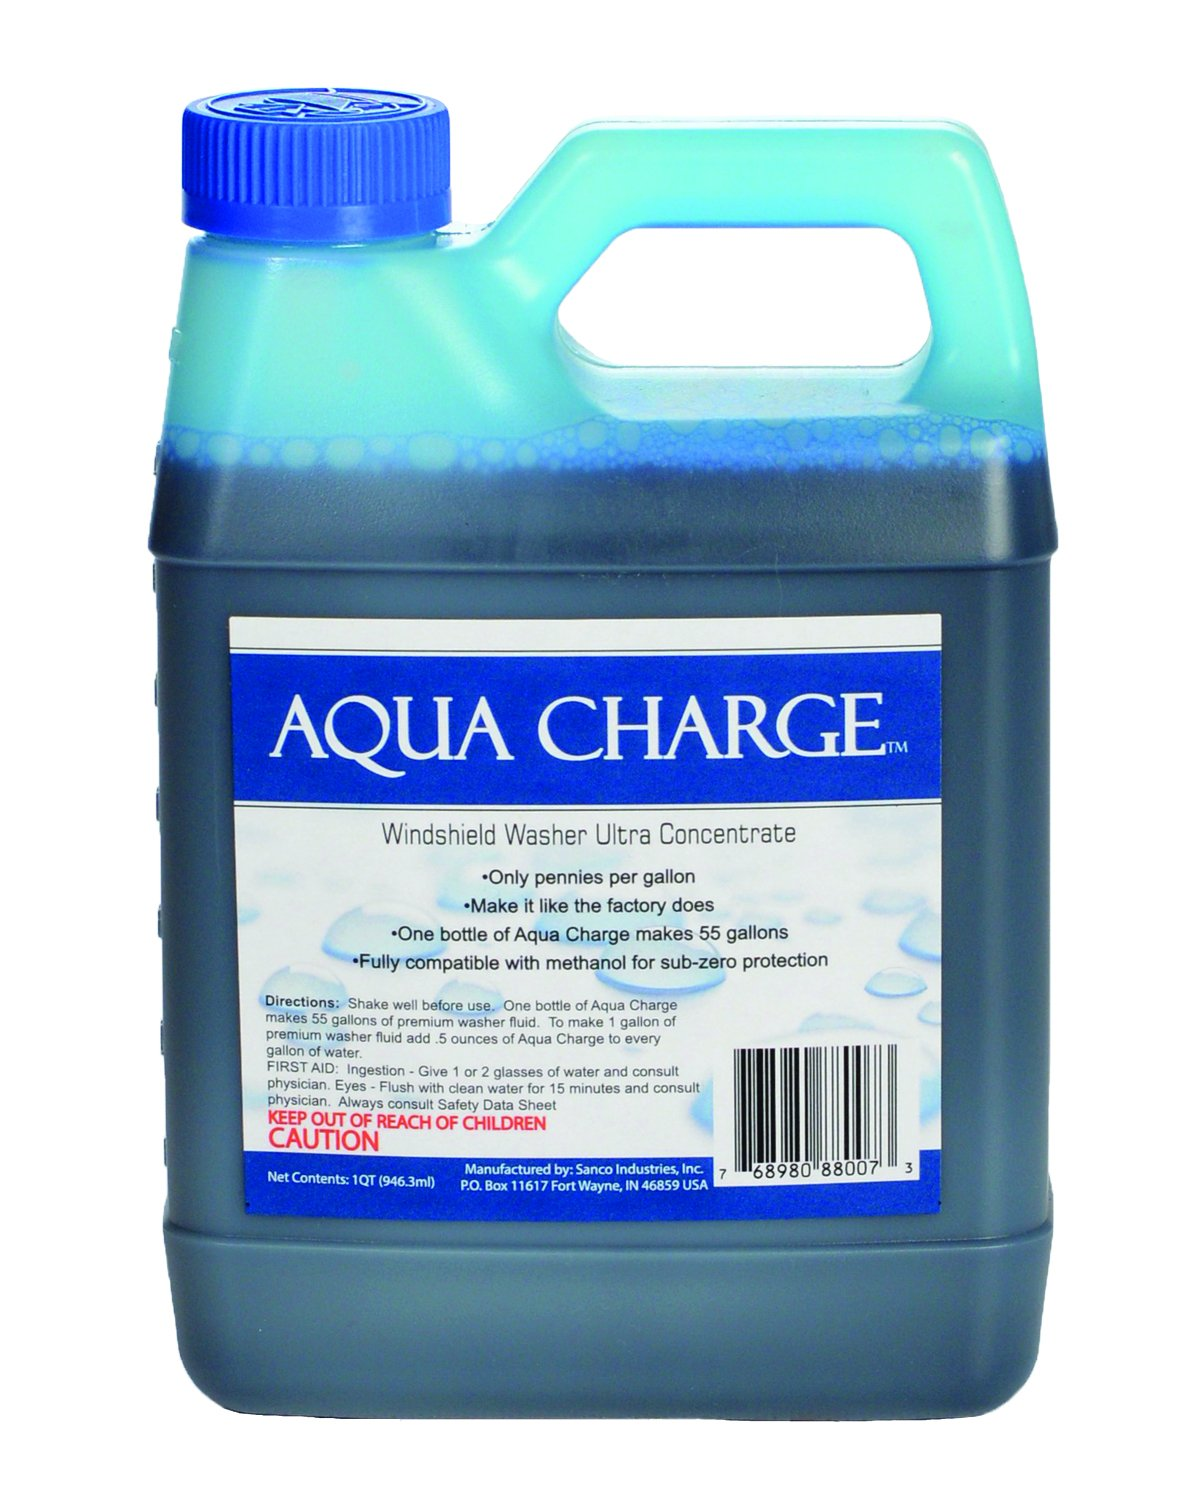 Aqua Charge Windshield Washer Ultra Concentrate, 1 quart makes 55 gallons finished product by Sanco Industries